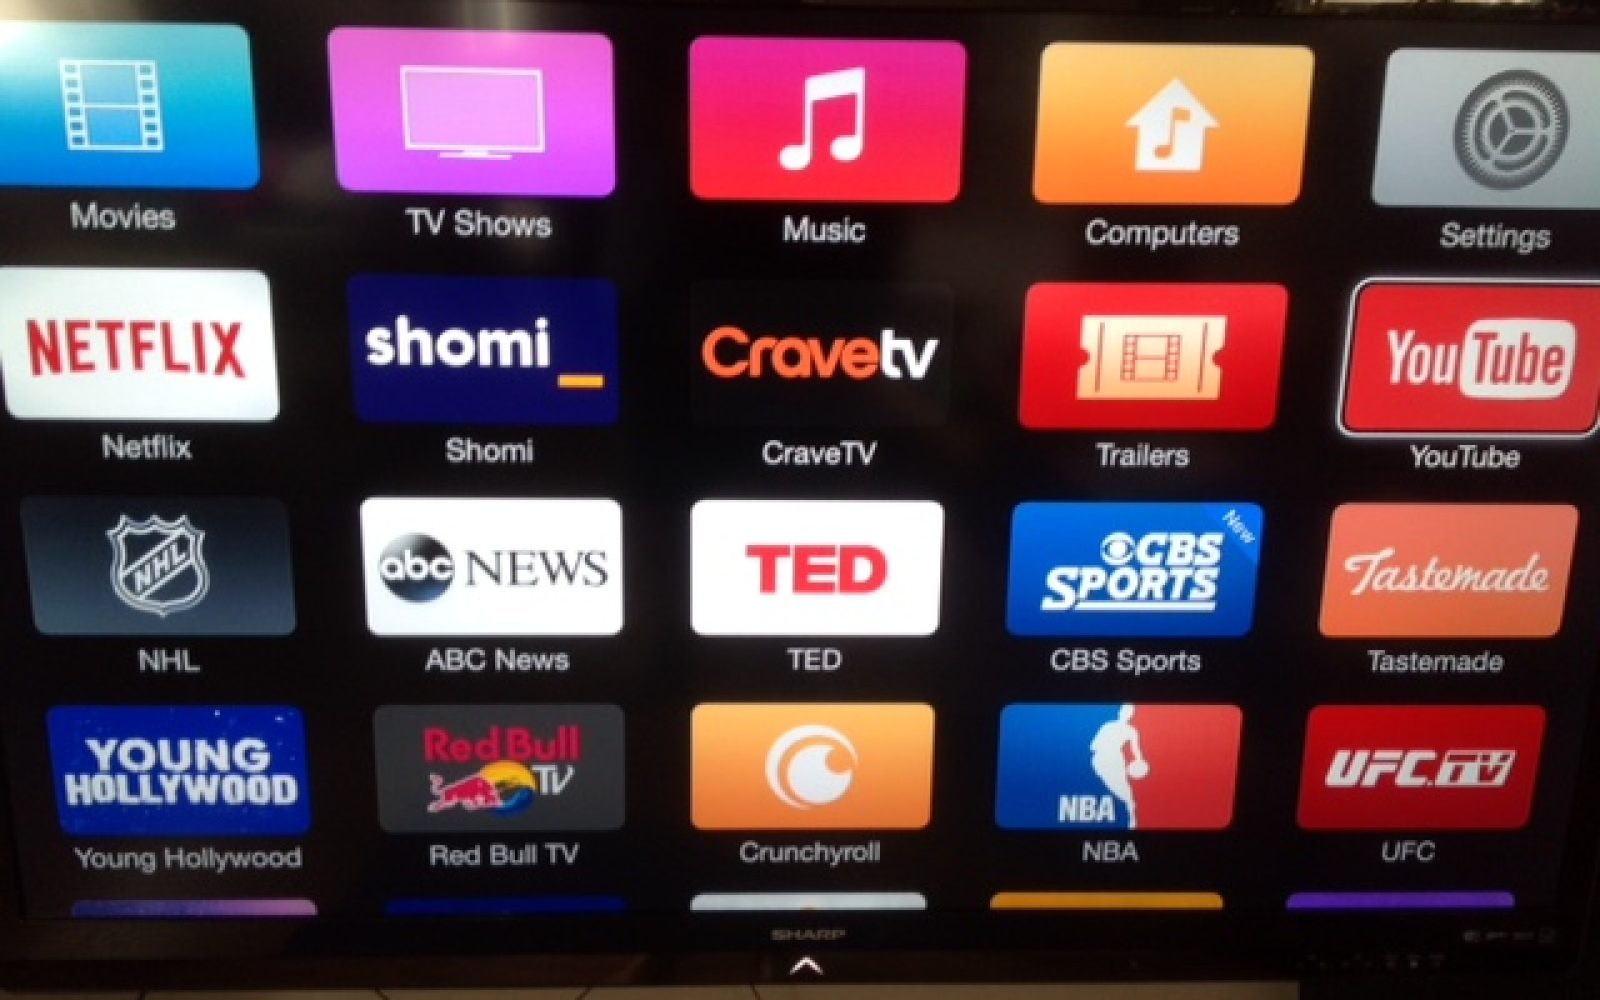 Apple TV users get Bell's CraveTV & Rogers' Shomi services